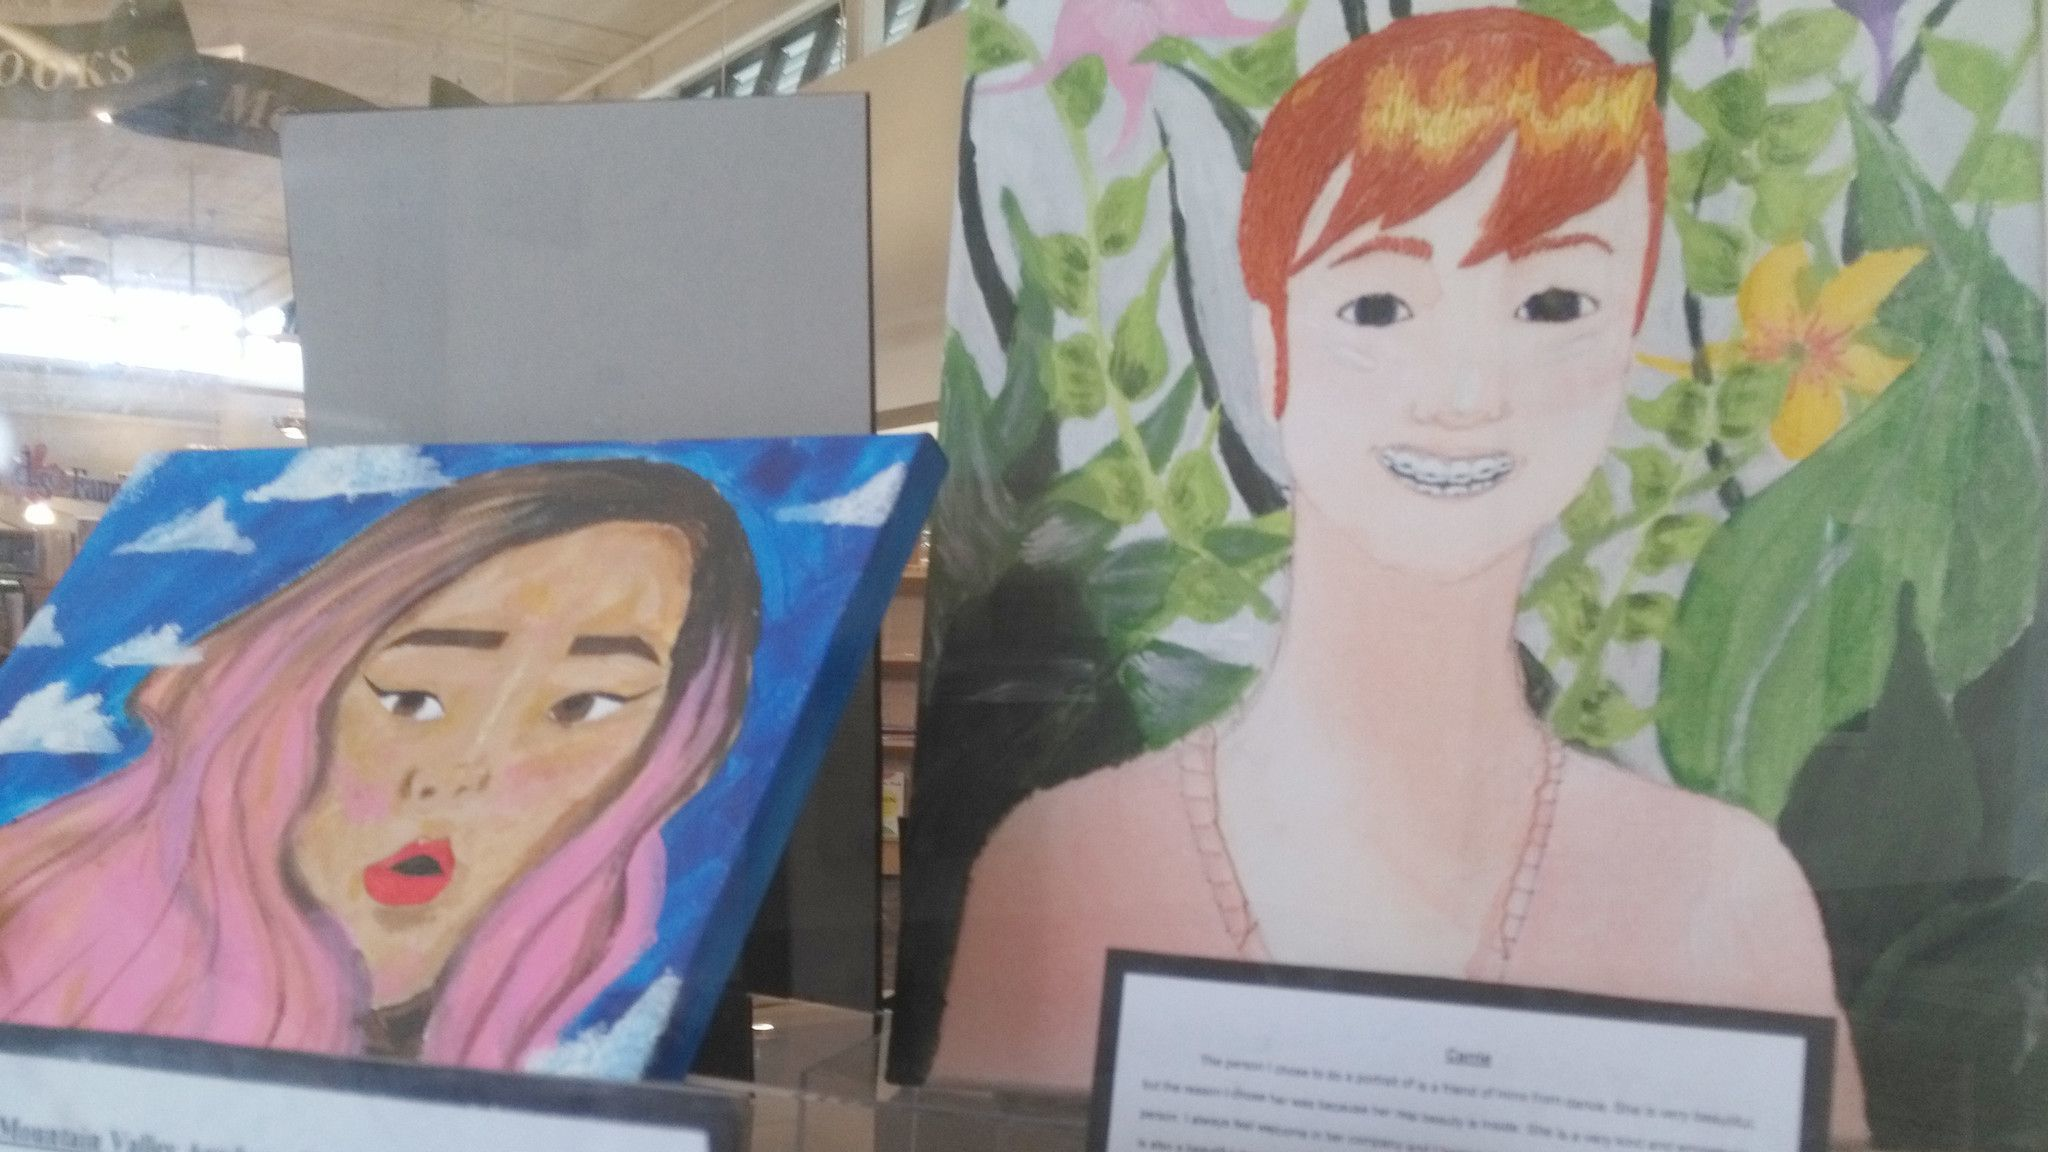 Mountain Valley Academy student Minna Hubler-Hopkins created an acrylic of Kirsten Nguyen, left, and MVA student Helen Buchanan created the mixed-media on the right.